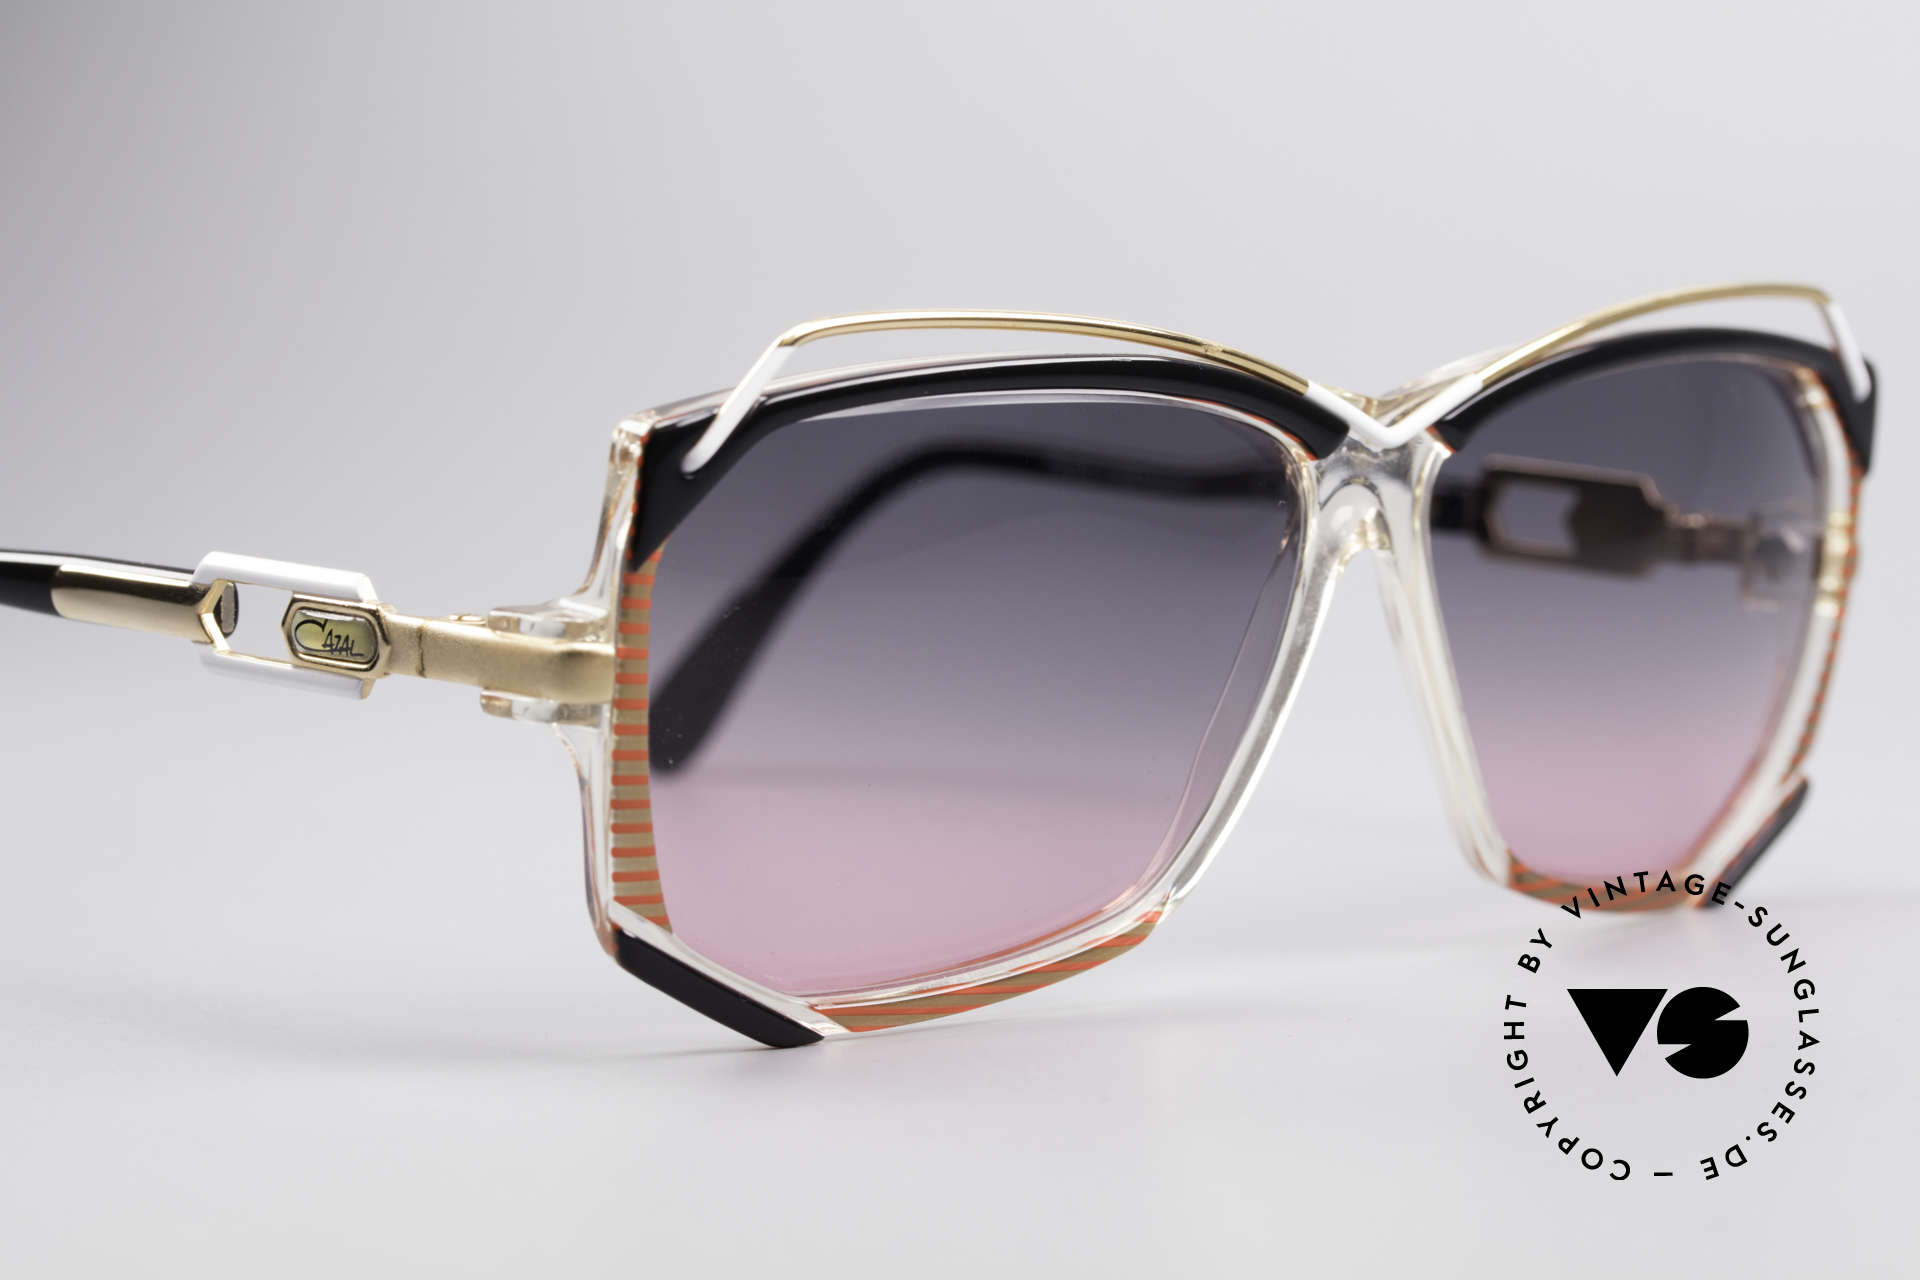 Cazal 188 Vintage Sunglasses Ladies, NO RETRO shades, but a precious old rarity from 1988, Made for Women